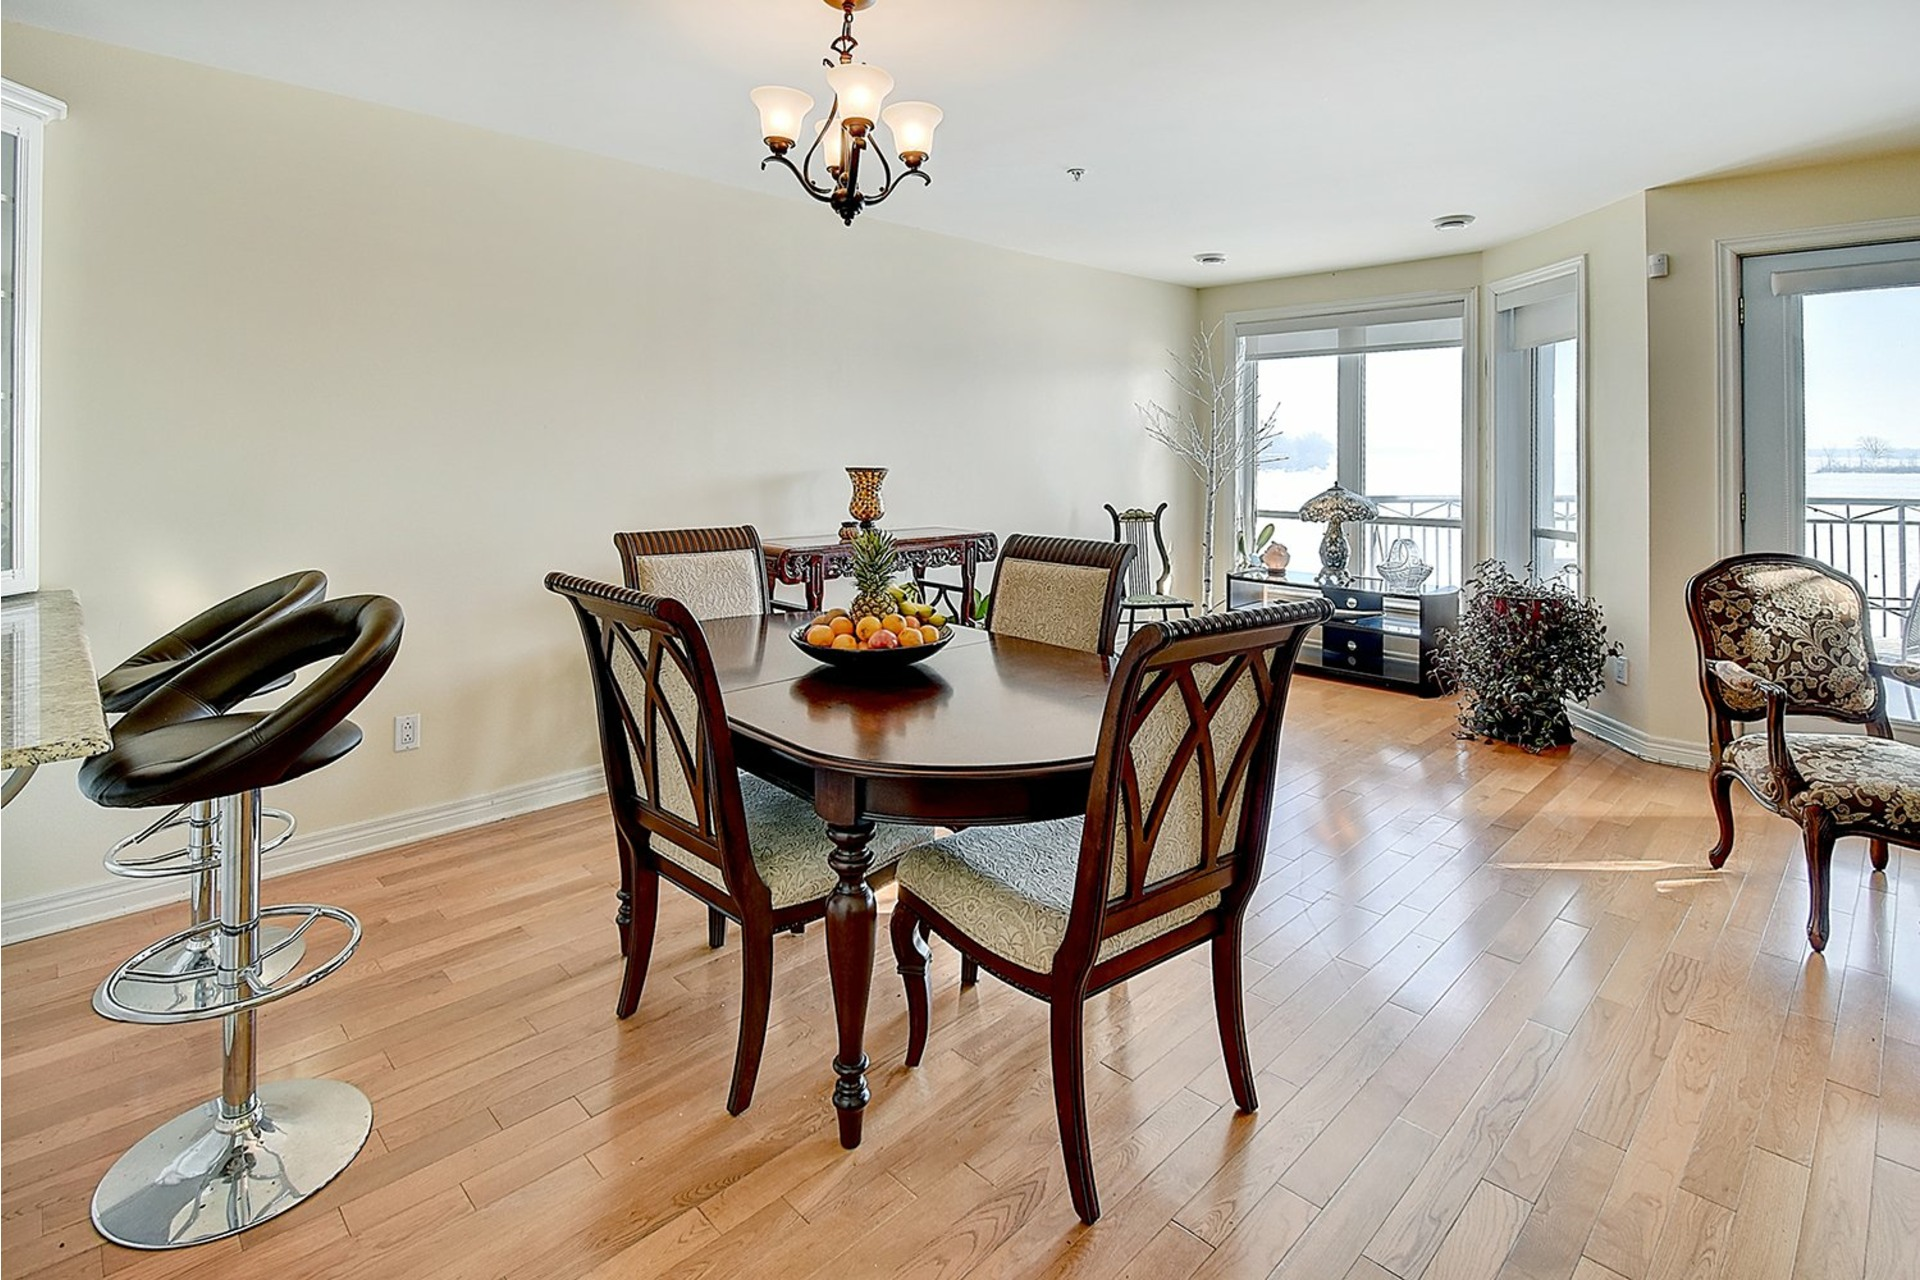 image 5 - Apartment For sale L'Île-Perrot - 8 rooms